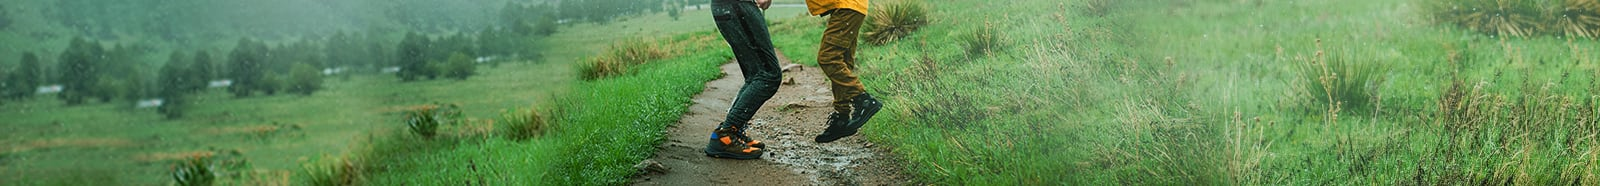 Two kids playing on a muddy trail in the rain.